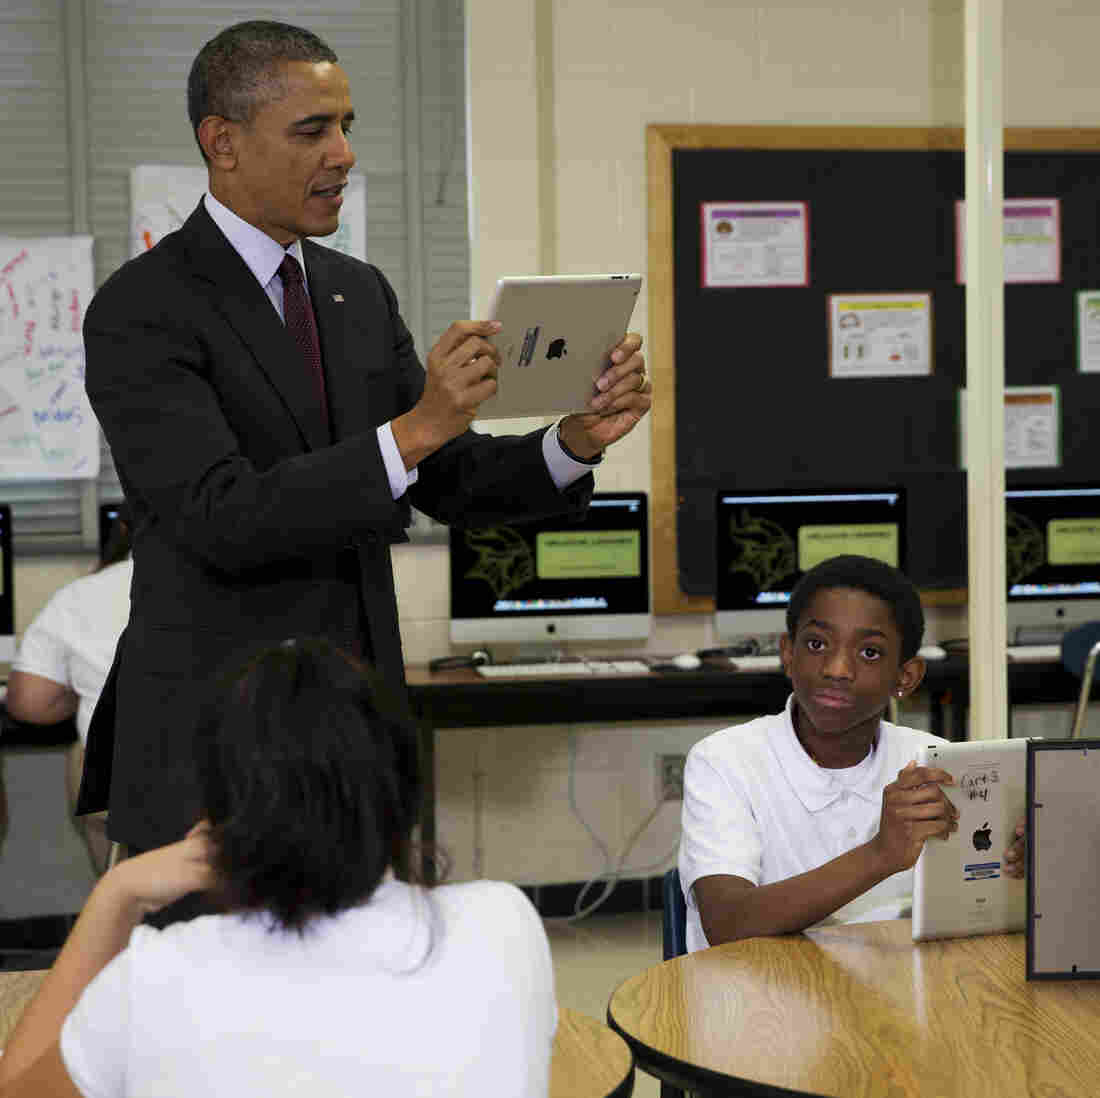 Obama Secures Funding To Help Connect Students To Internet